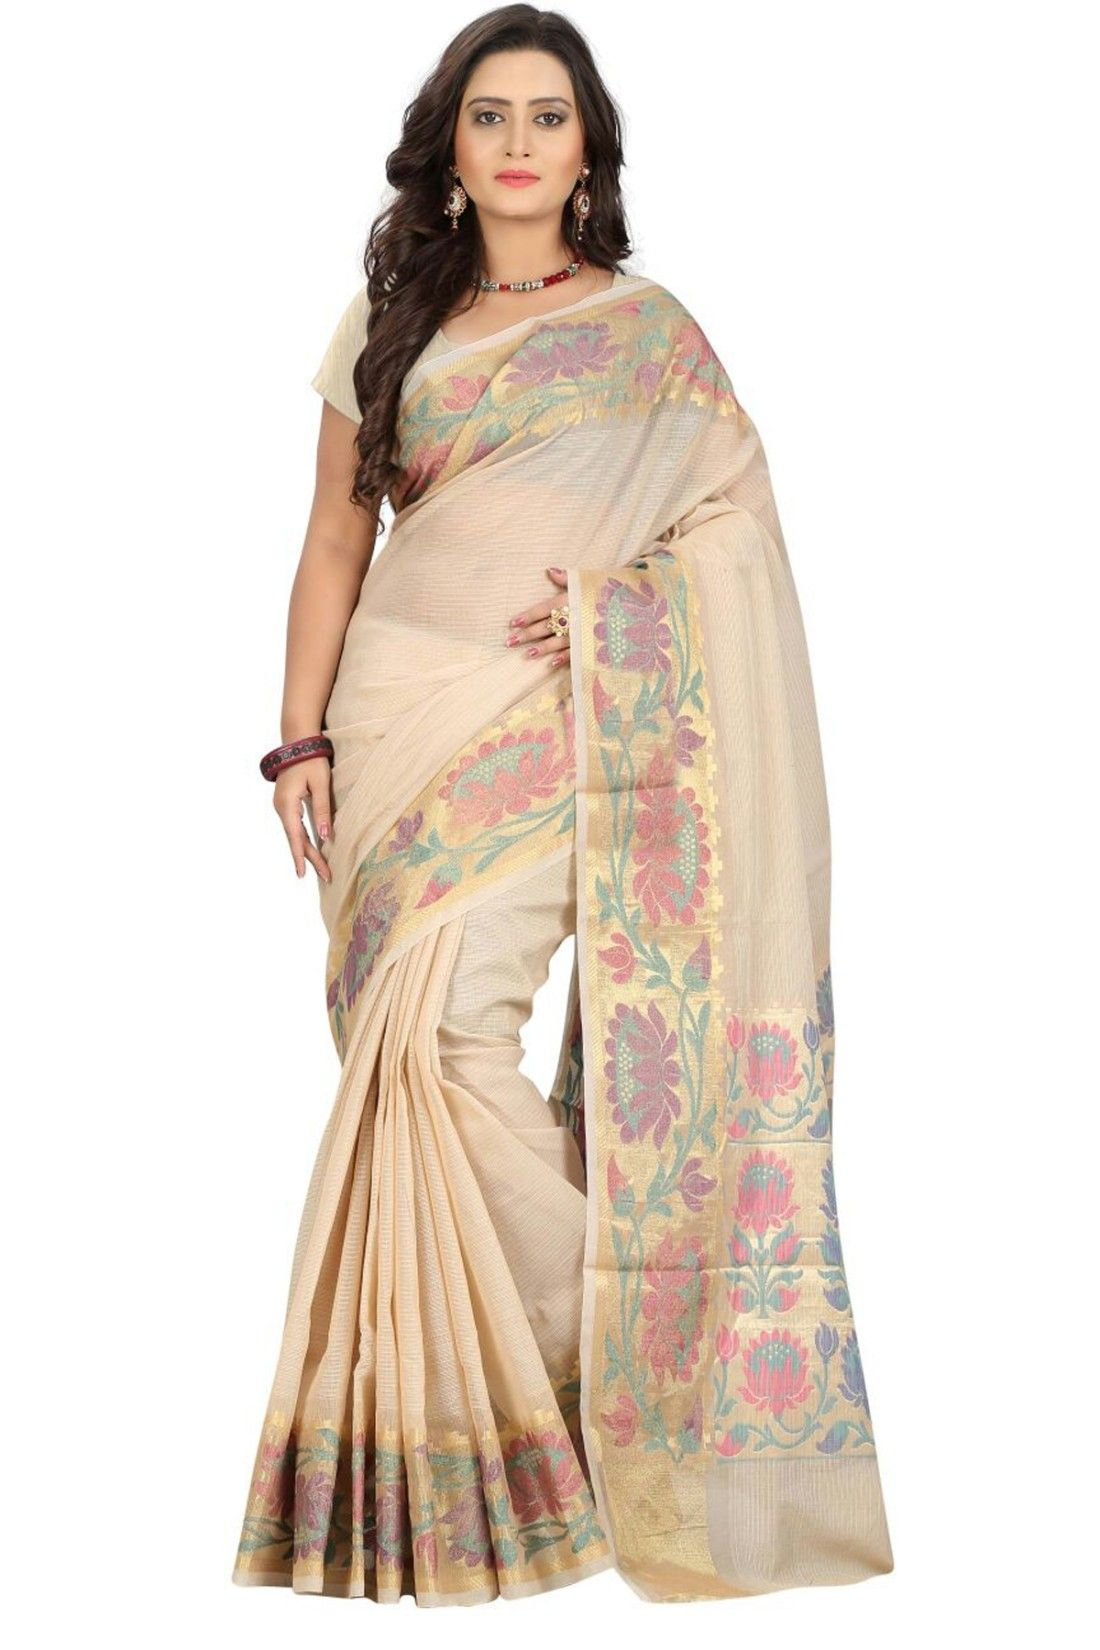 Online shopping for sarees in mumbai